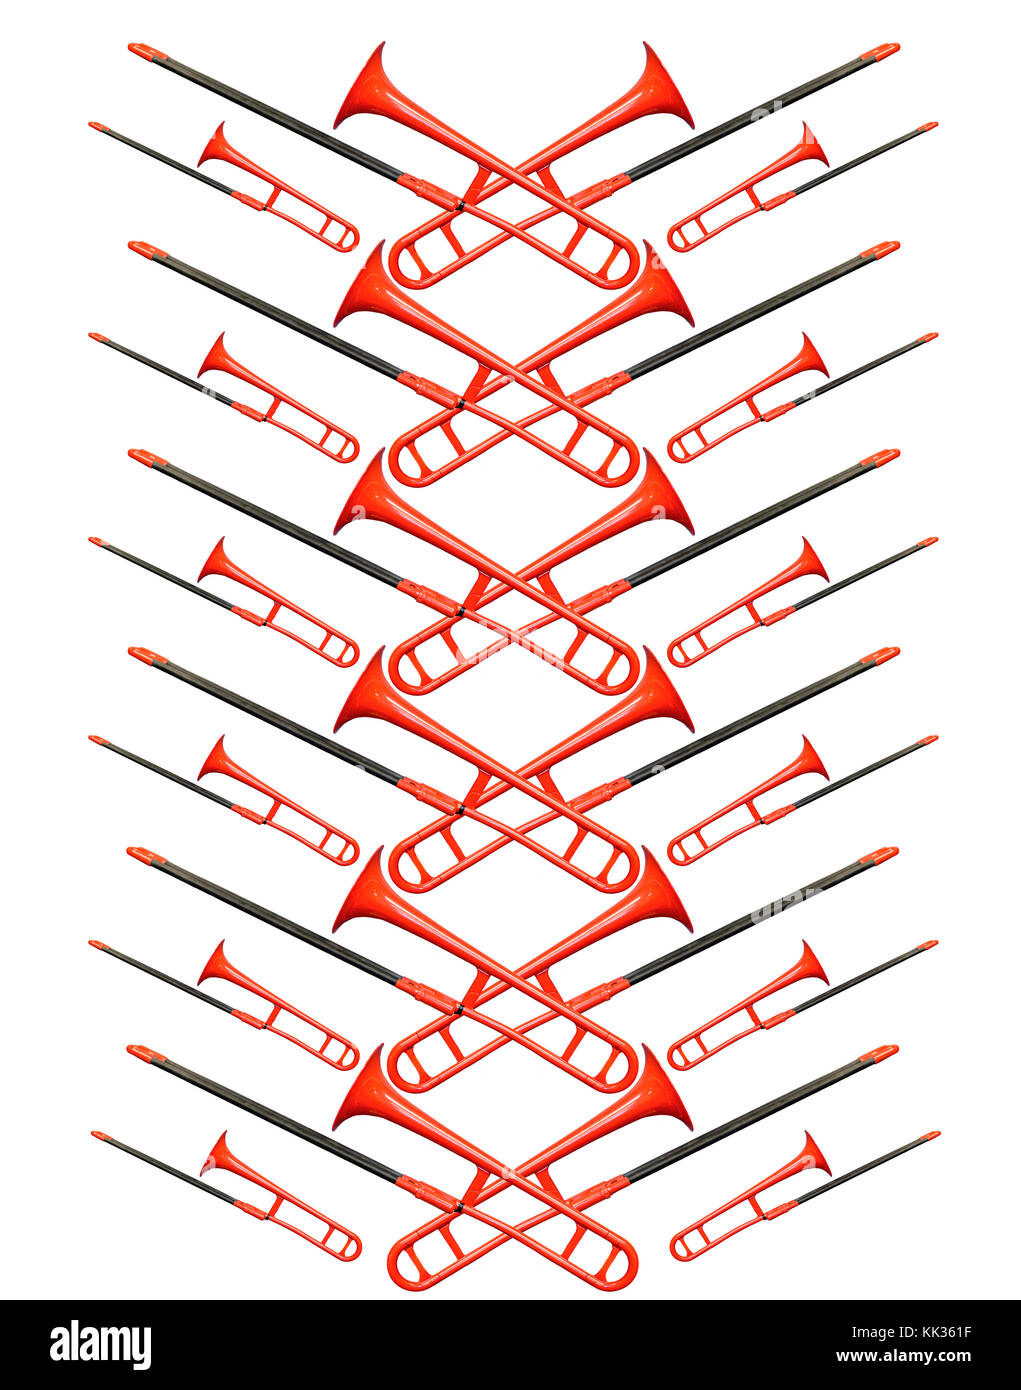 Red trombone on the white background, located diagonally - Stock Image